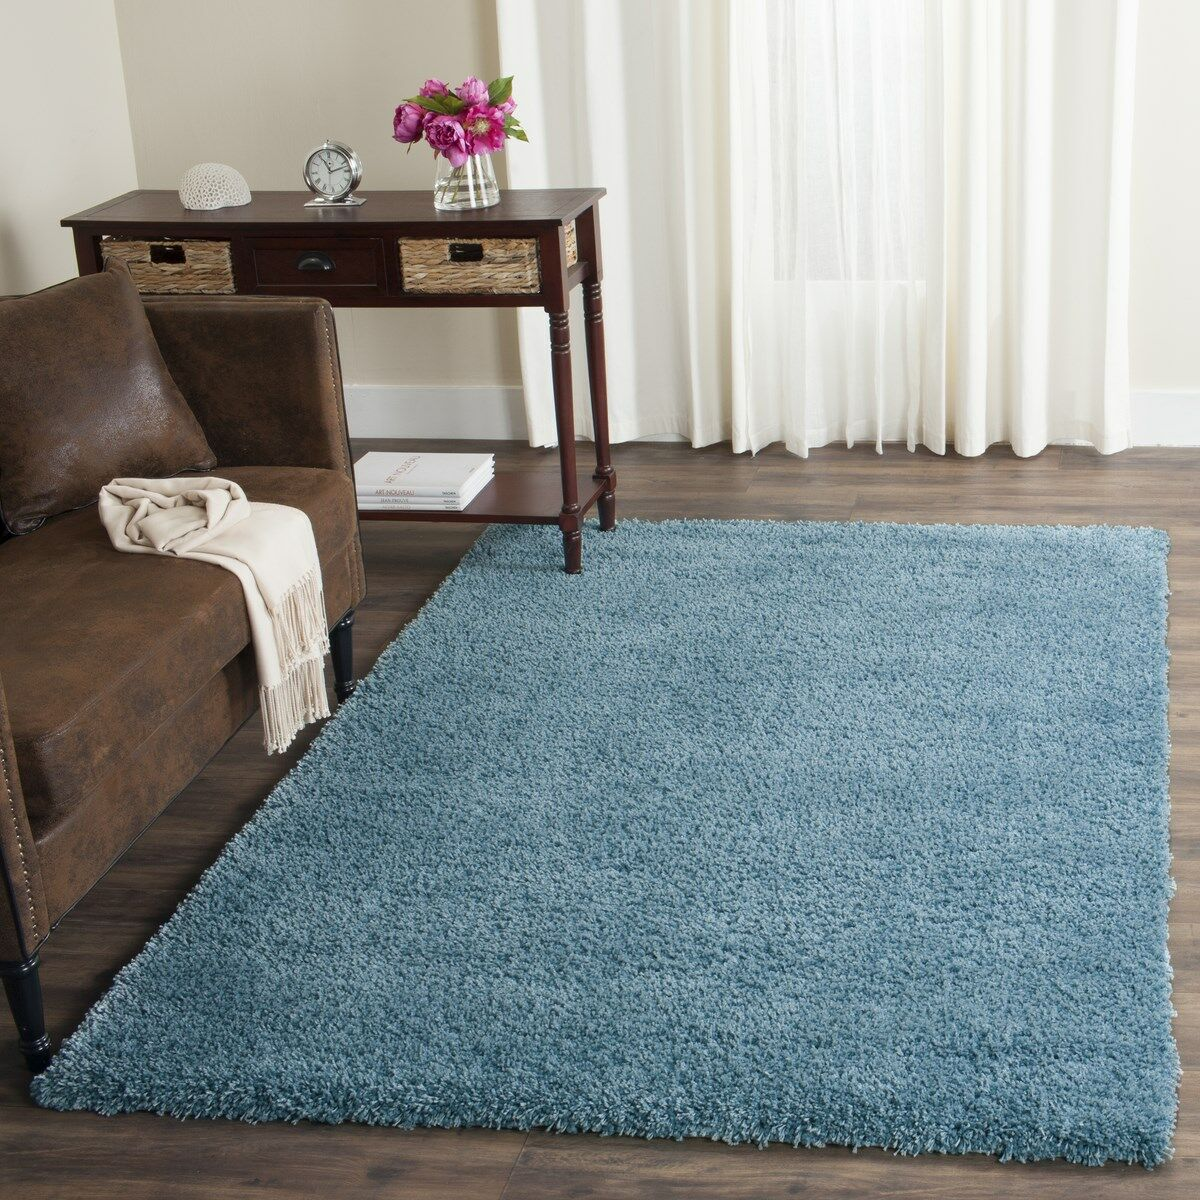 Demonte Shag Turquoise Area Rug Rug Size: Rectangle 8'6